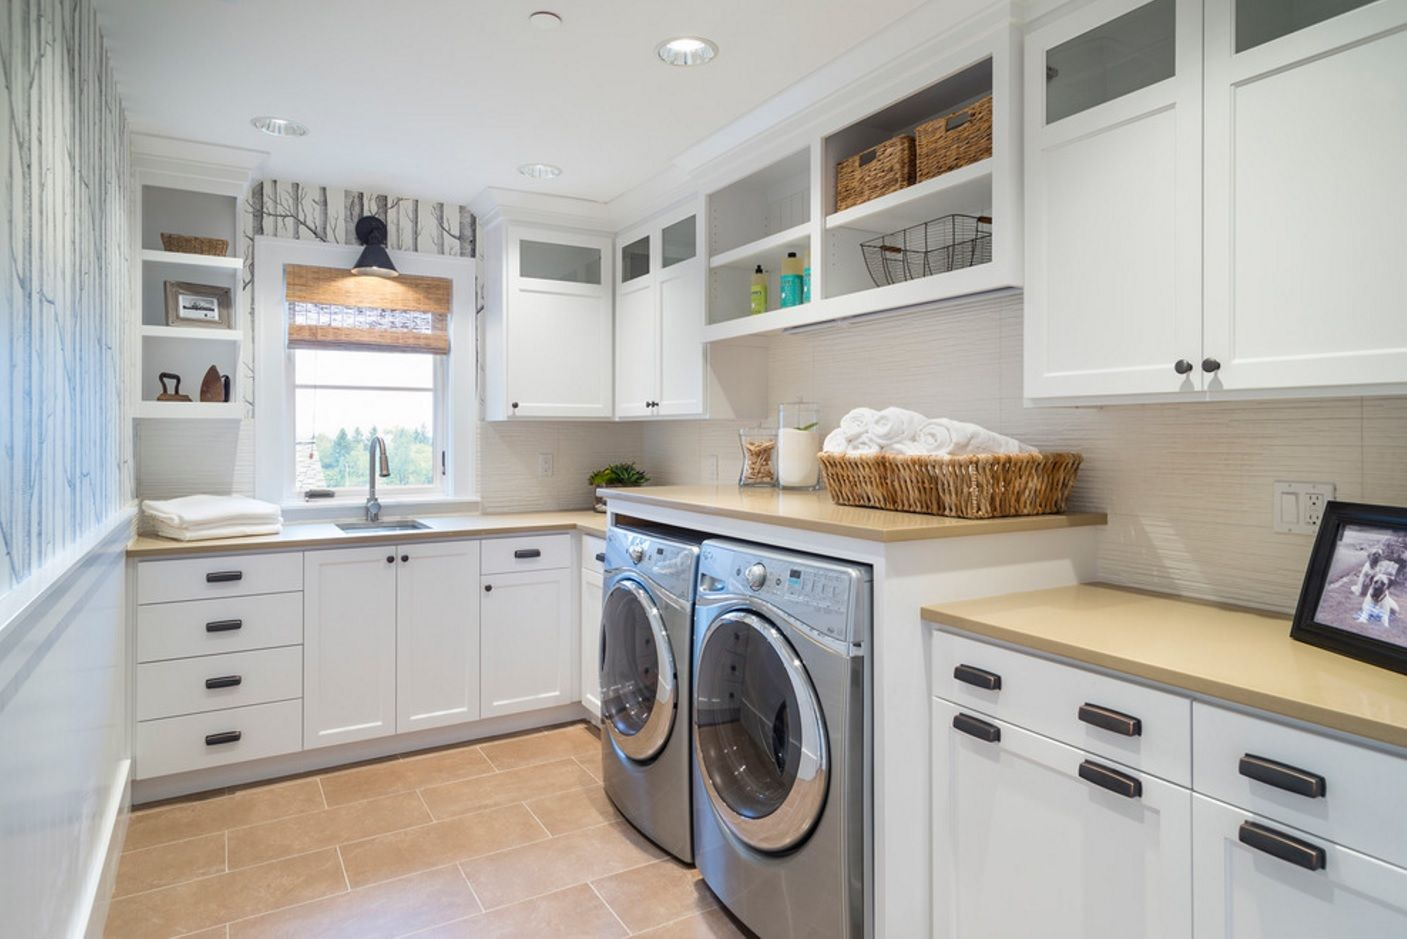 Laundry Allocation Options for Modern Home Interior. Large kitchen with the cleaning zone